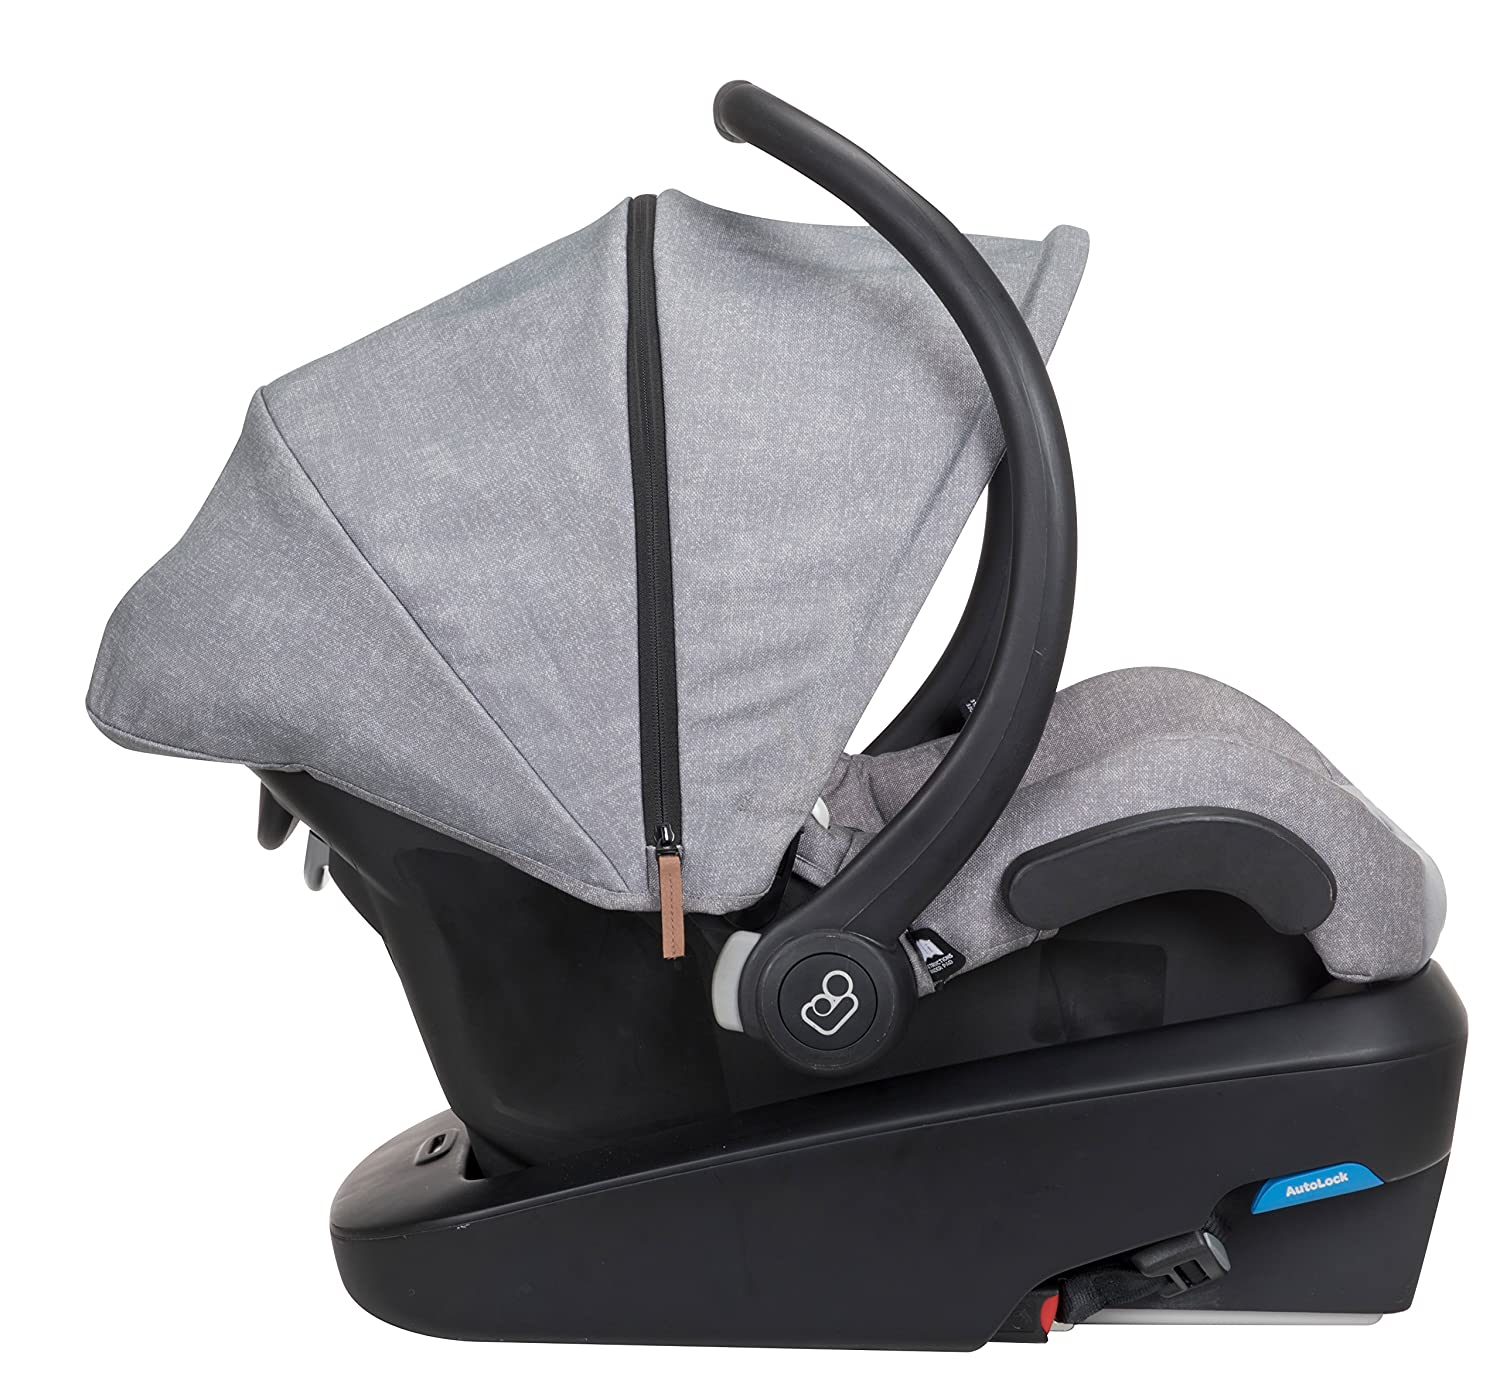 Maxi-Cosi Mico Max Plus Infant Car Seat With Base, Nomad Grey, One Size